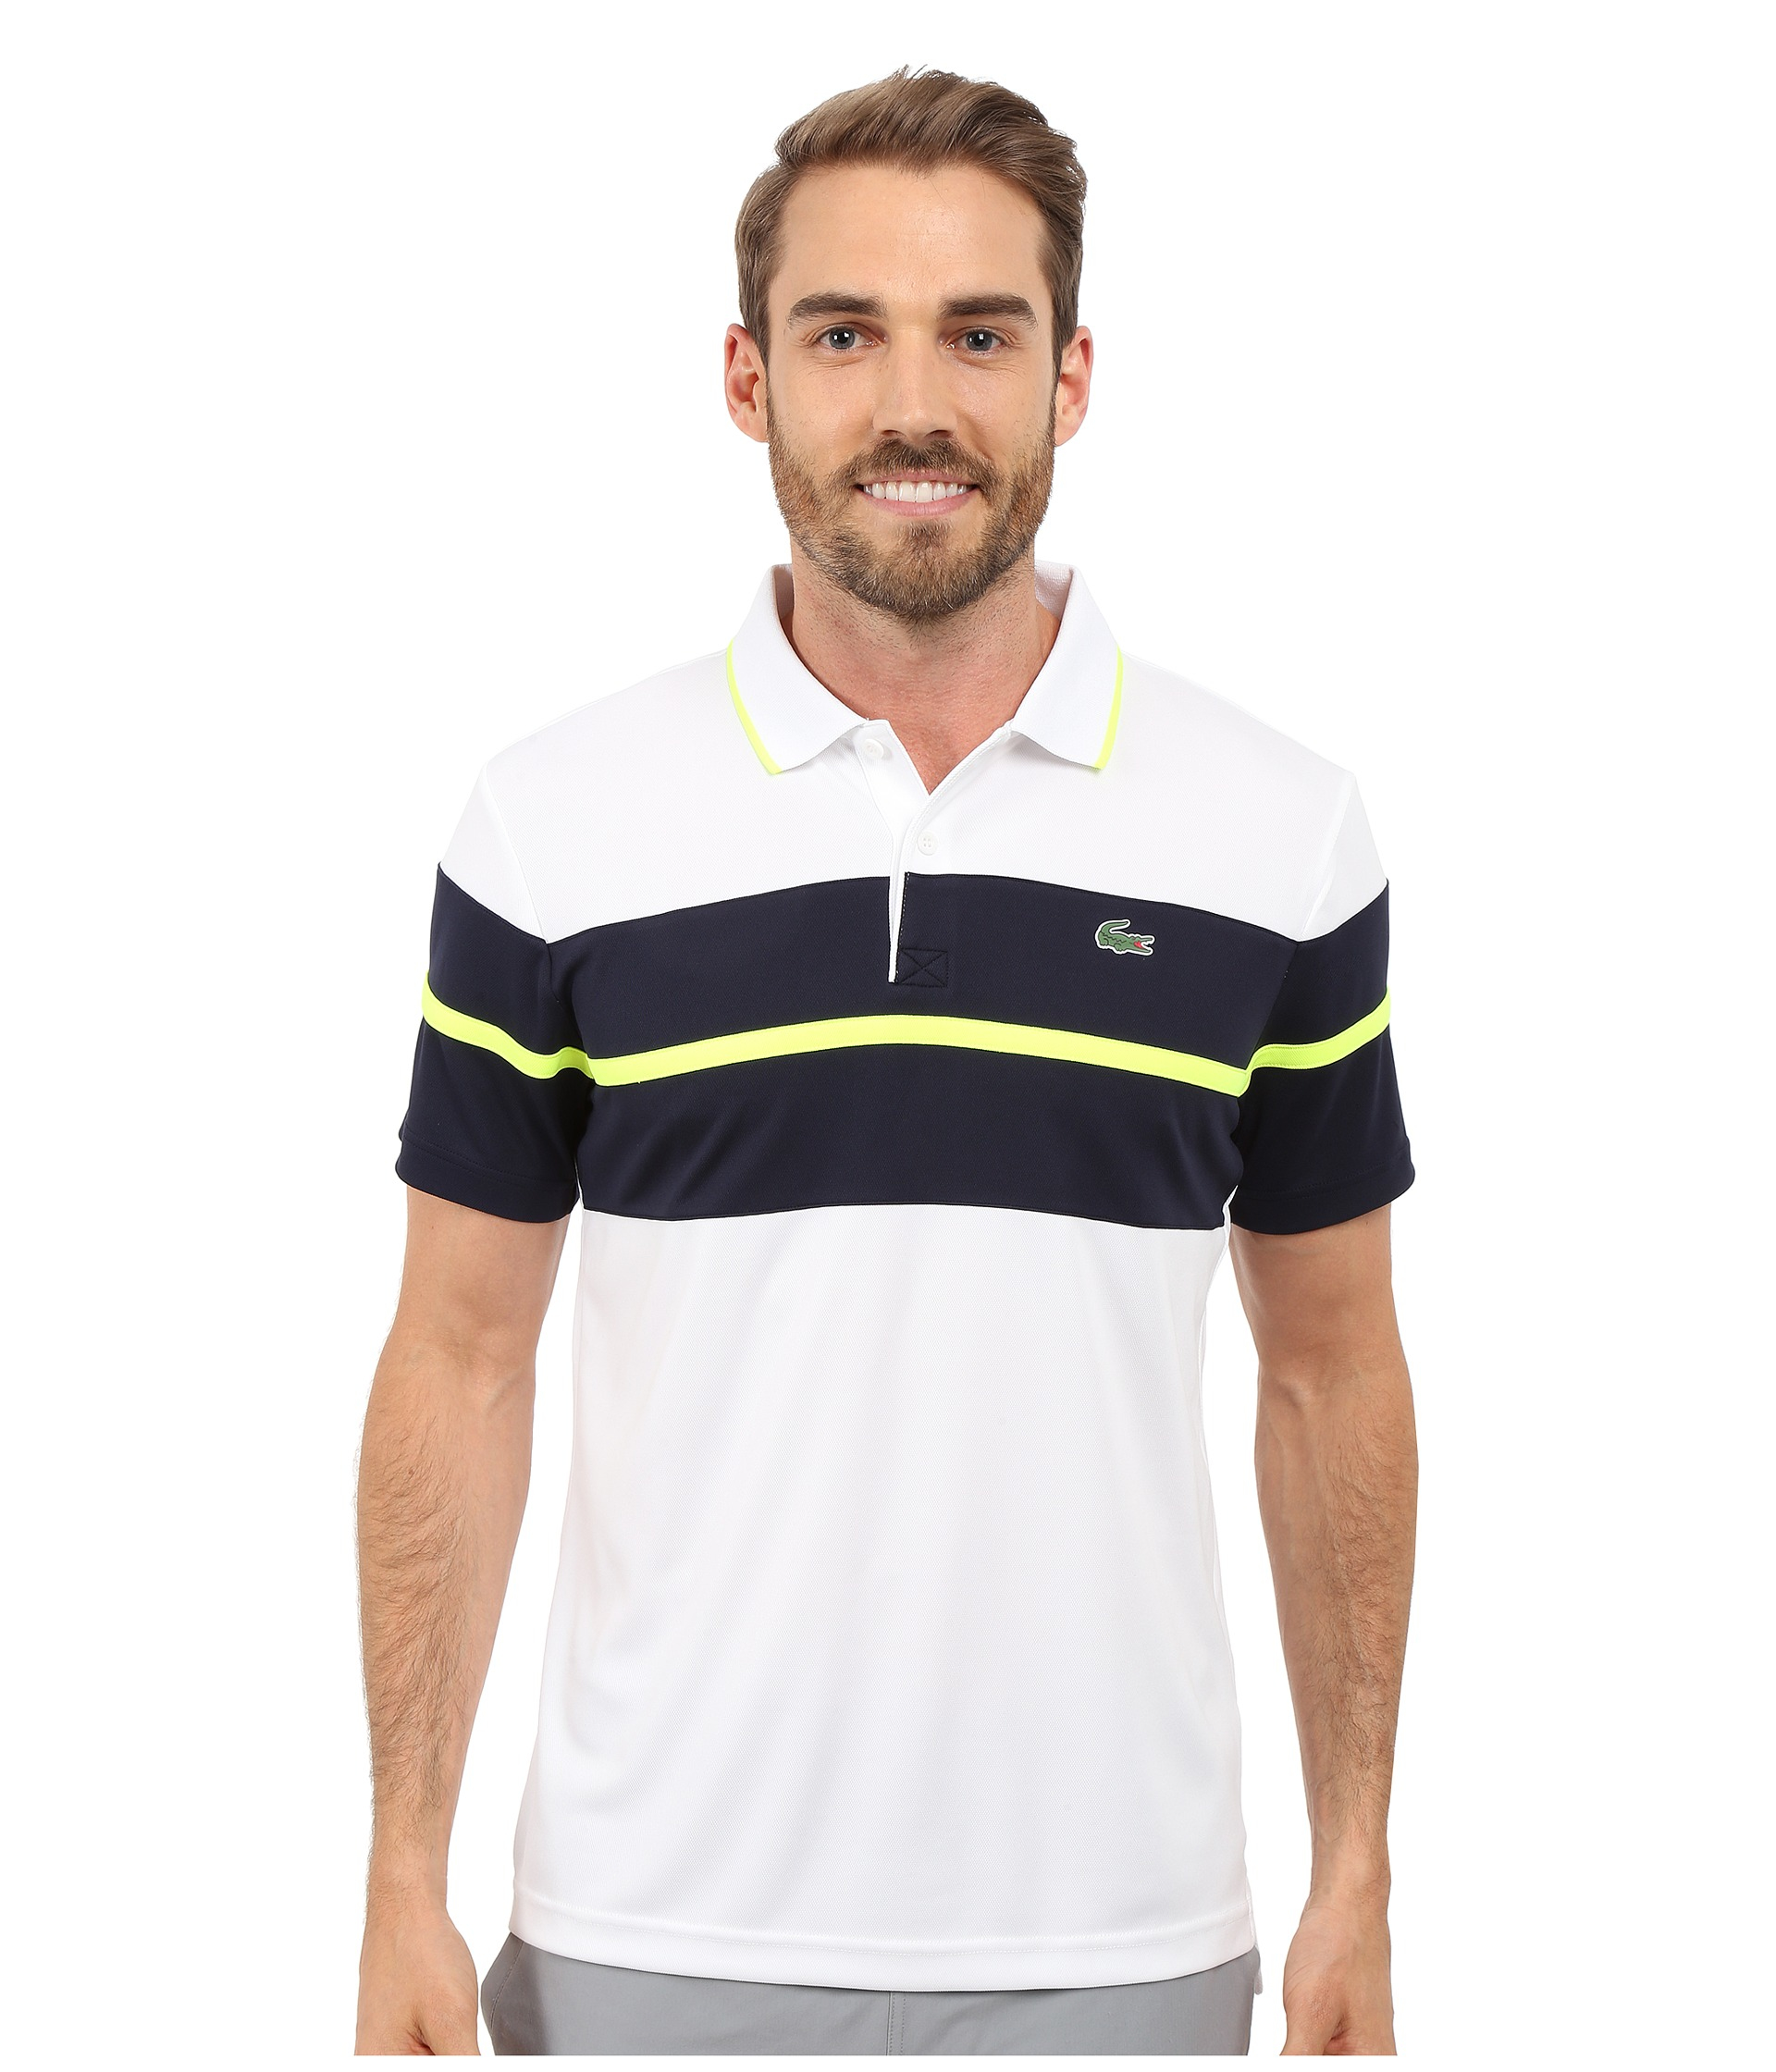 ace0d070 pas cher polo lacoste sport ultra dry - Achat | gdgclub.oneloyalty.in